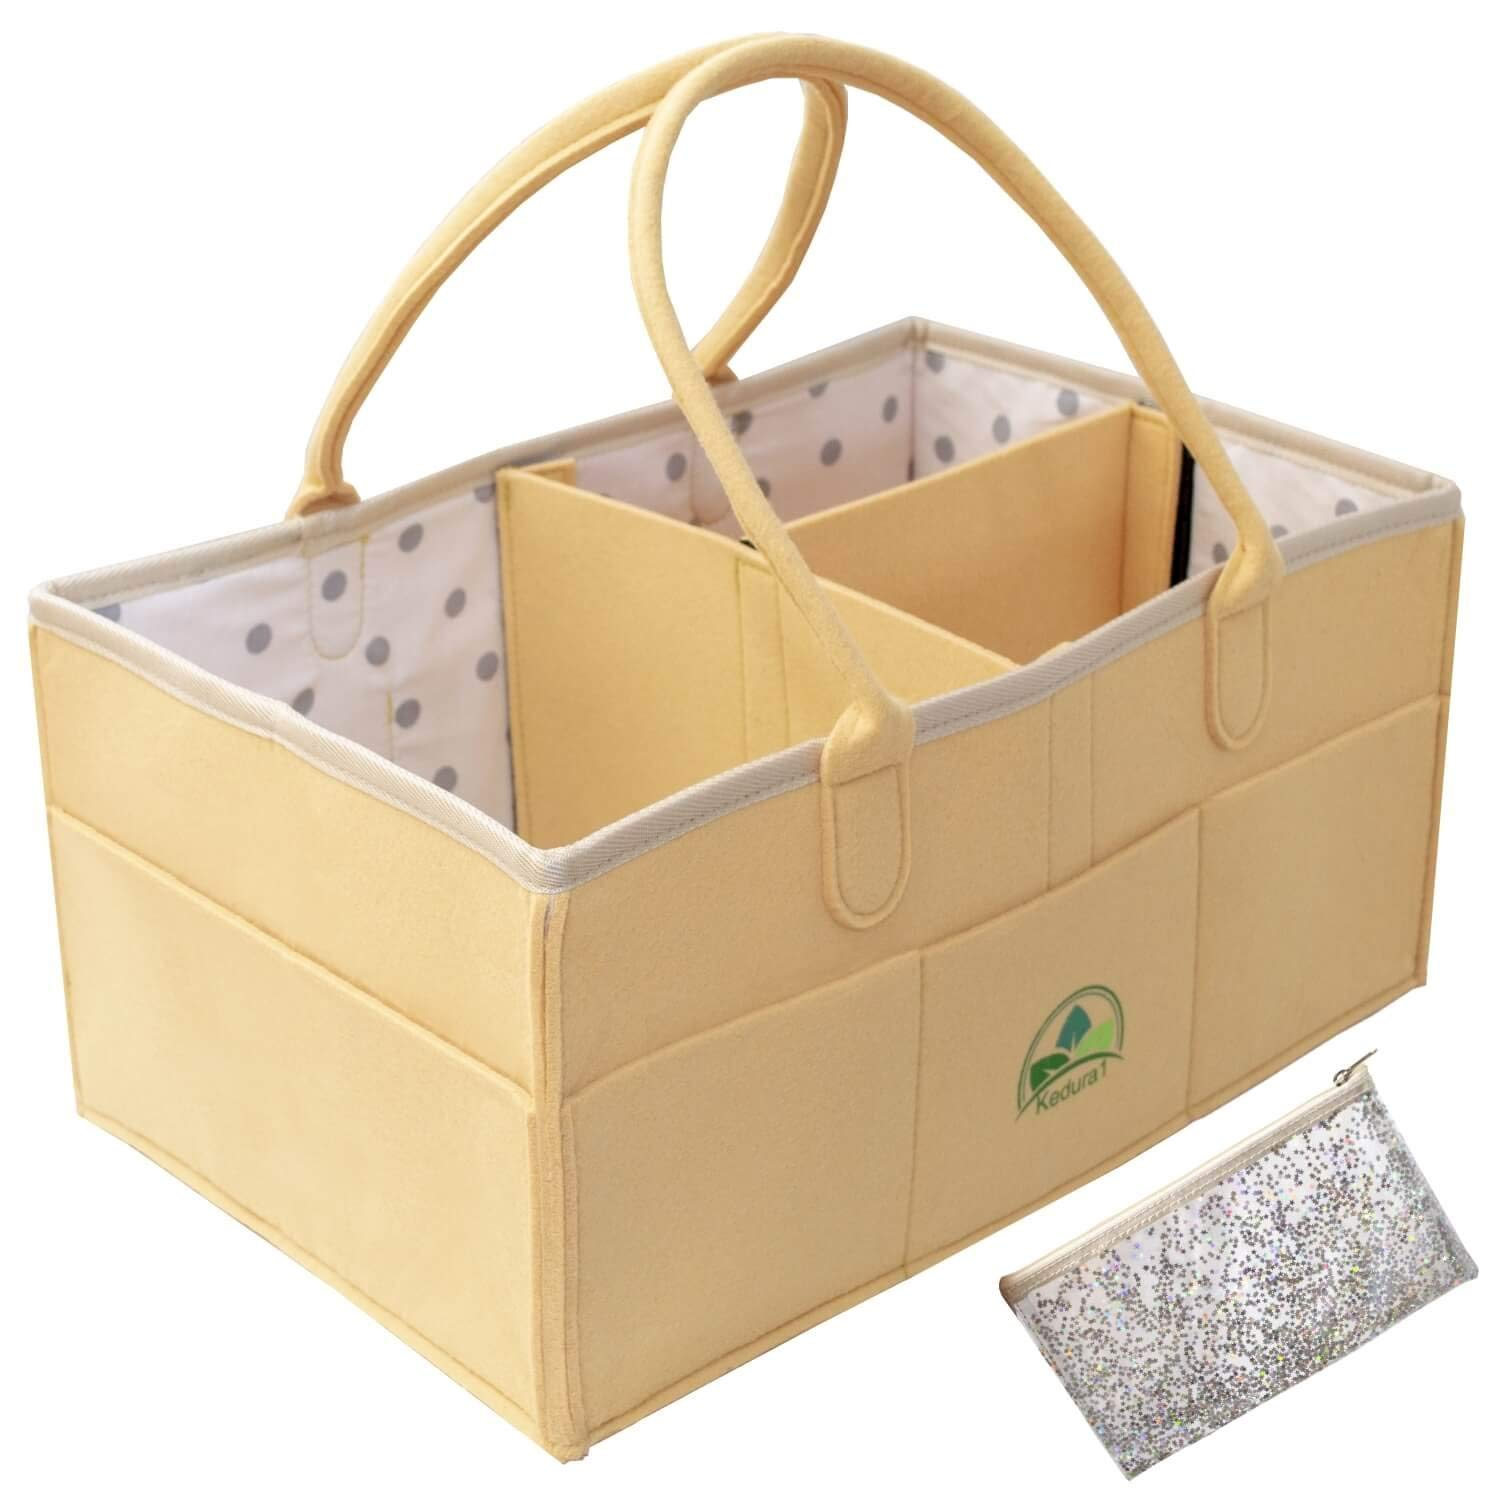 Baby Diaper Caddy Organizer - Large Portable Nursery Storage Bin for Diapers Toys |Sturdy Boy Girl Changing Table Kit and Car Travel Bag | Perfect Baby Shower Gift | Cosmetic Pouch Included Kedura1